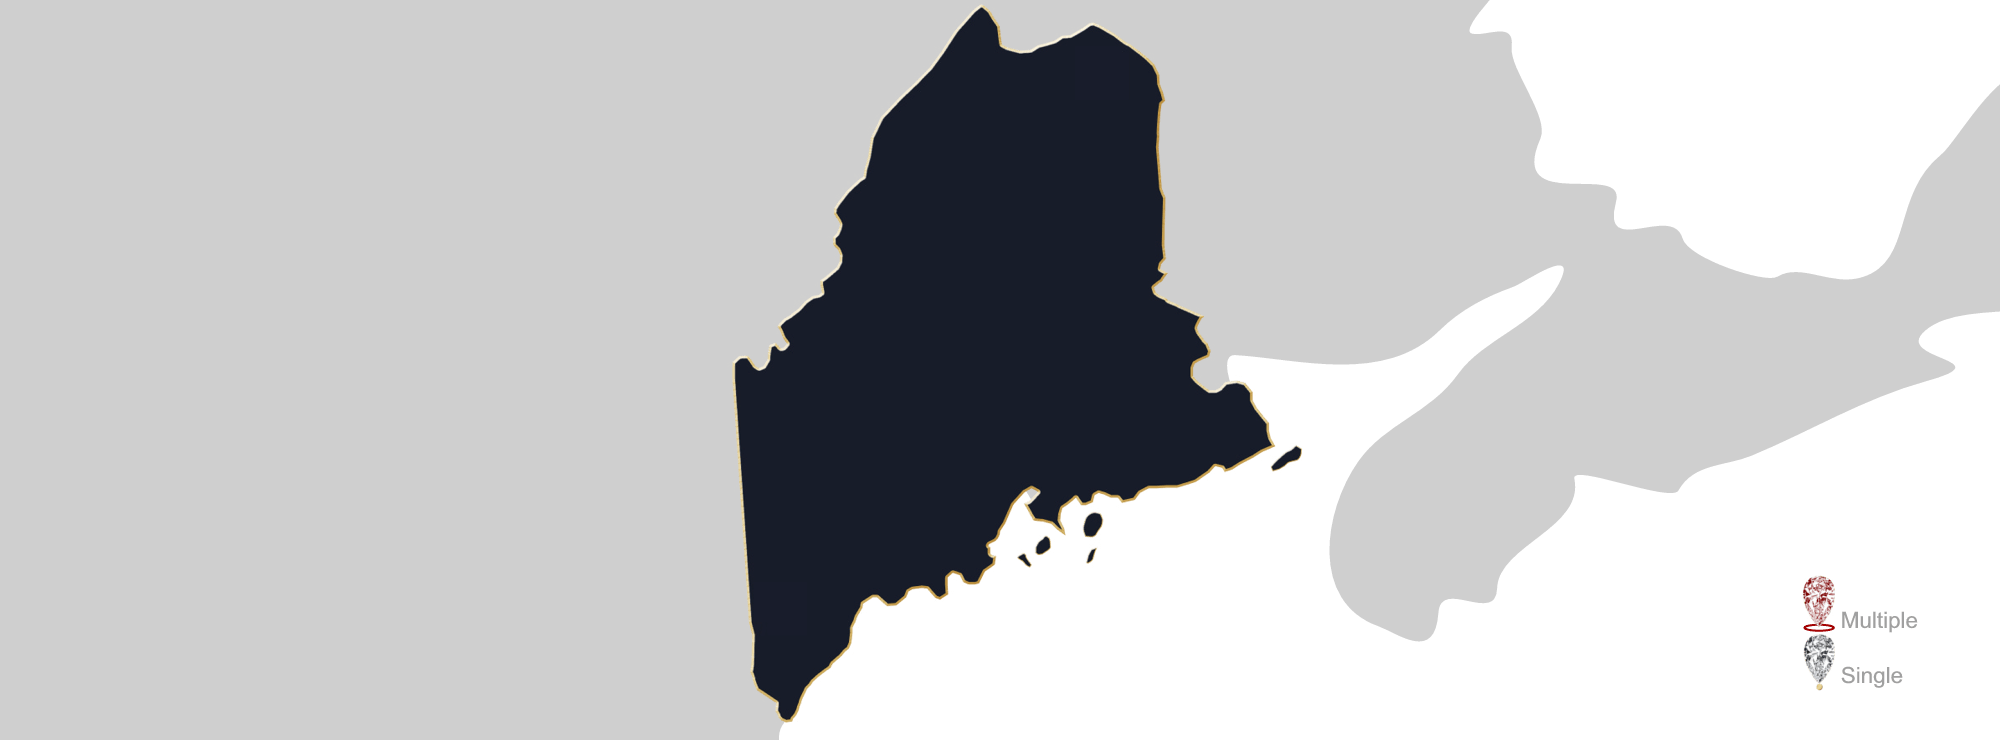 Map showing location of Jewelry Appraisers in Maine